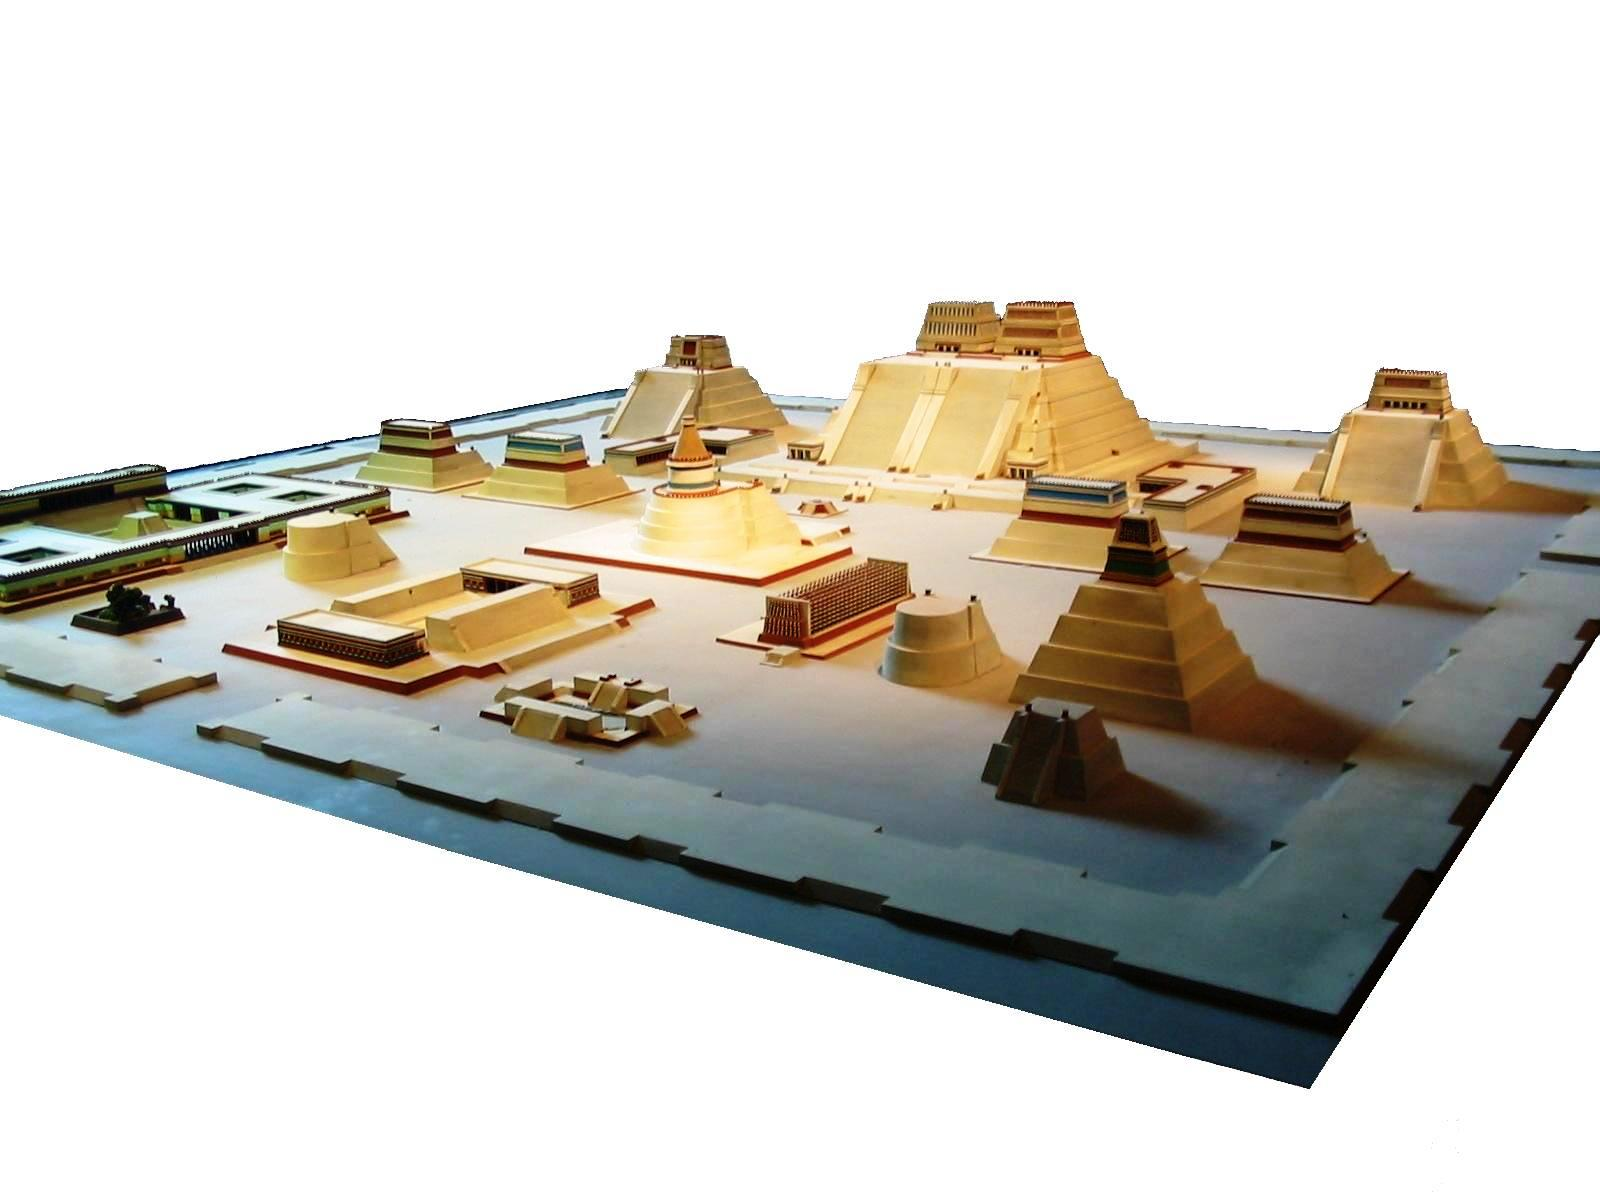 Model of the temple district of Tenochtitlan at the  National Museum of Anthropology   By Thelmadatter - Own work, Public Domain, https://commons.wikimedia.org/w/index.php?curid=3744781